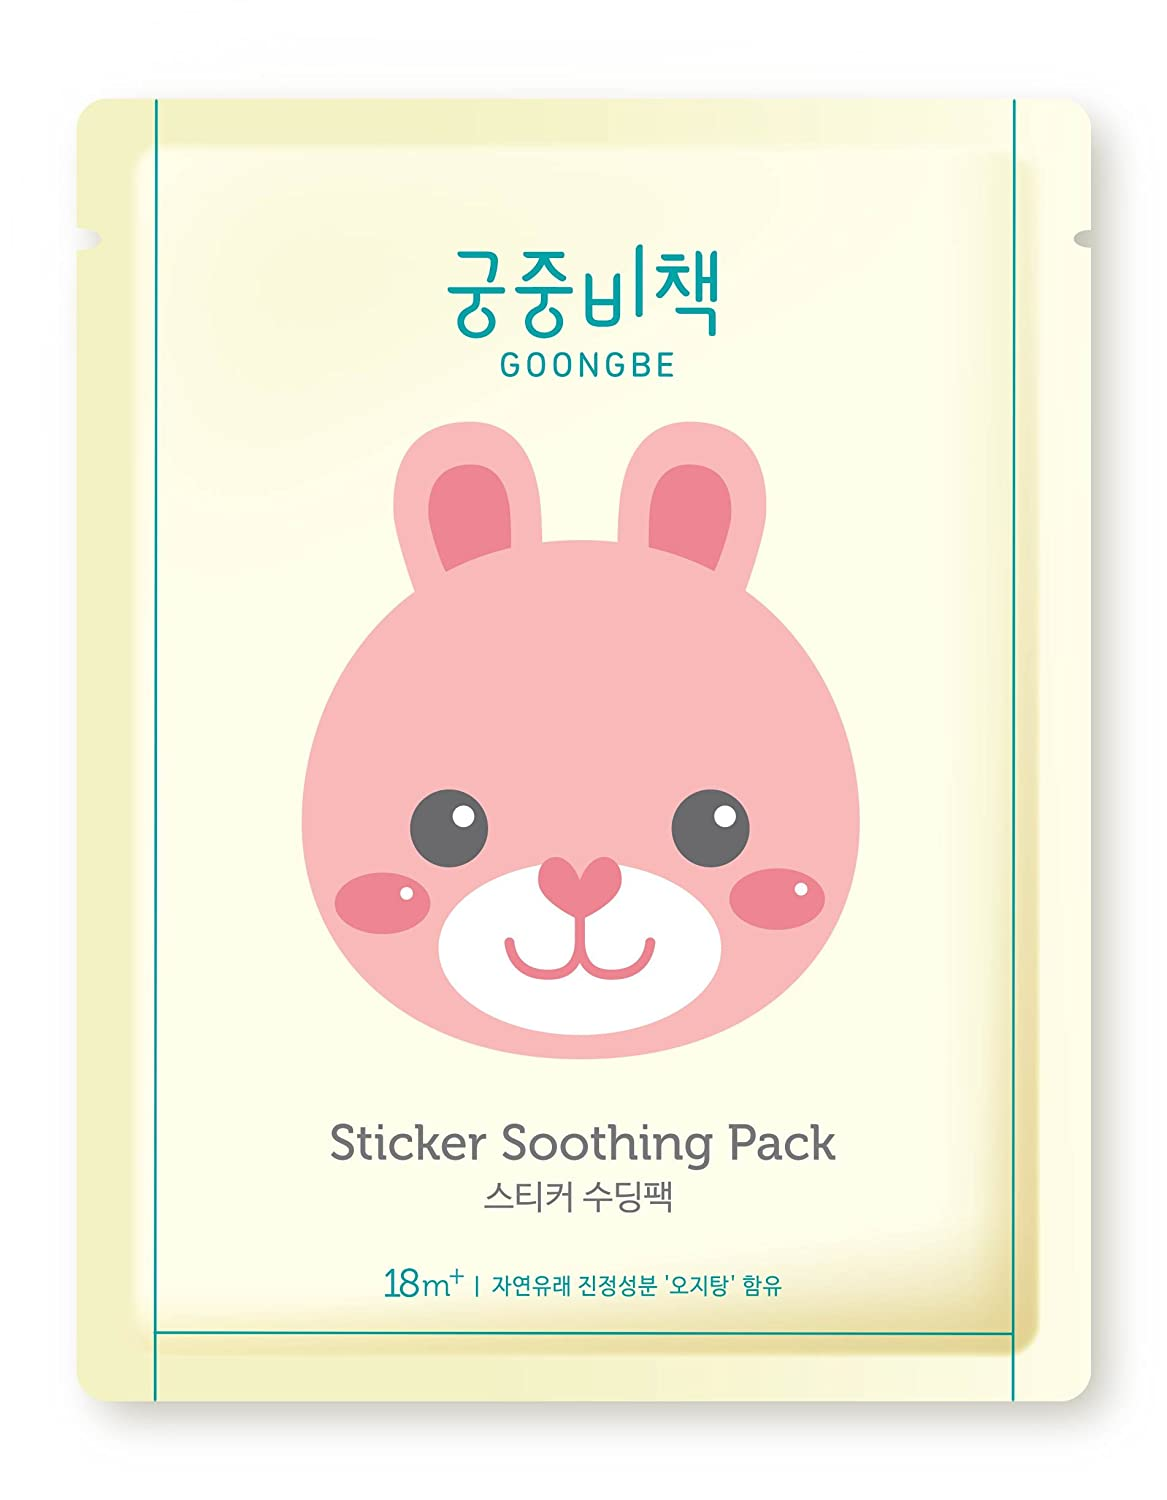 Sticker Soothing Pack - Goongjoong Bichaek / Goongbe / Mint Bebe Premium Luxury Baby Goods Natural & Plant-Derived Ingredients Korean Skincare Baby Products 궁중비책 궁비